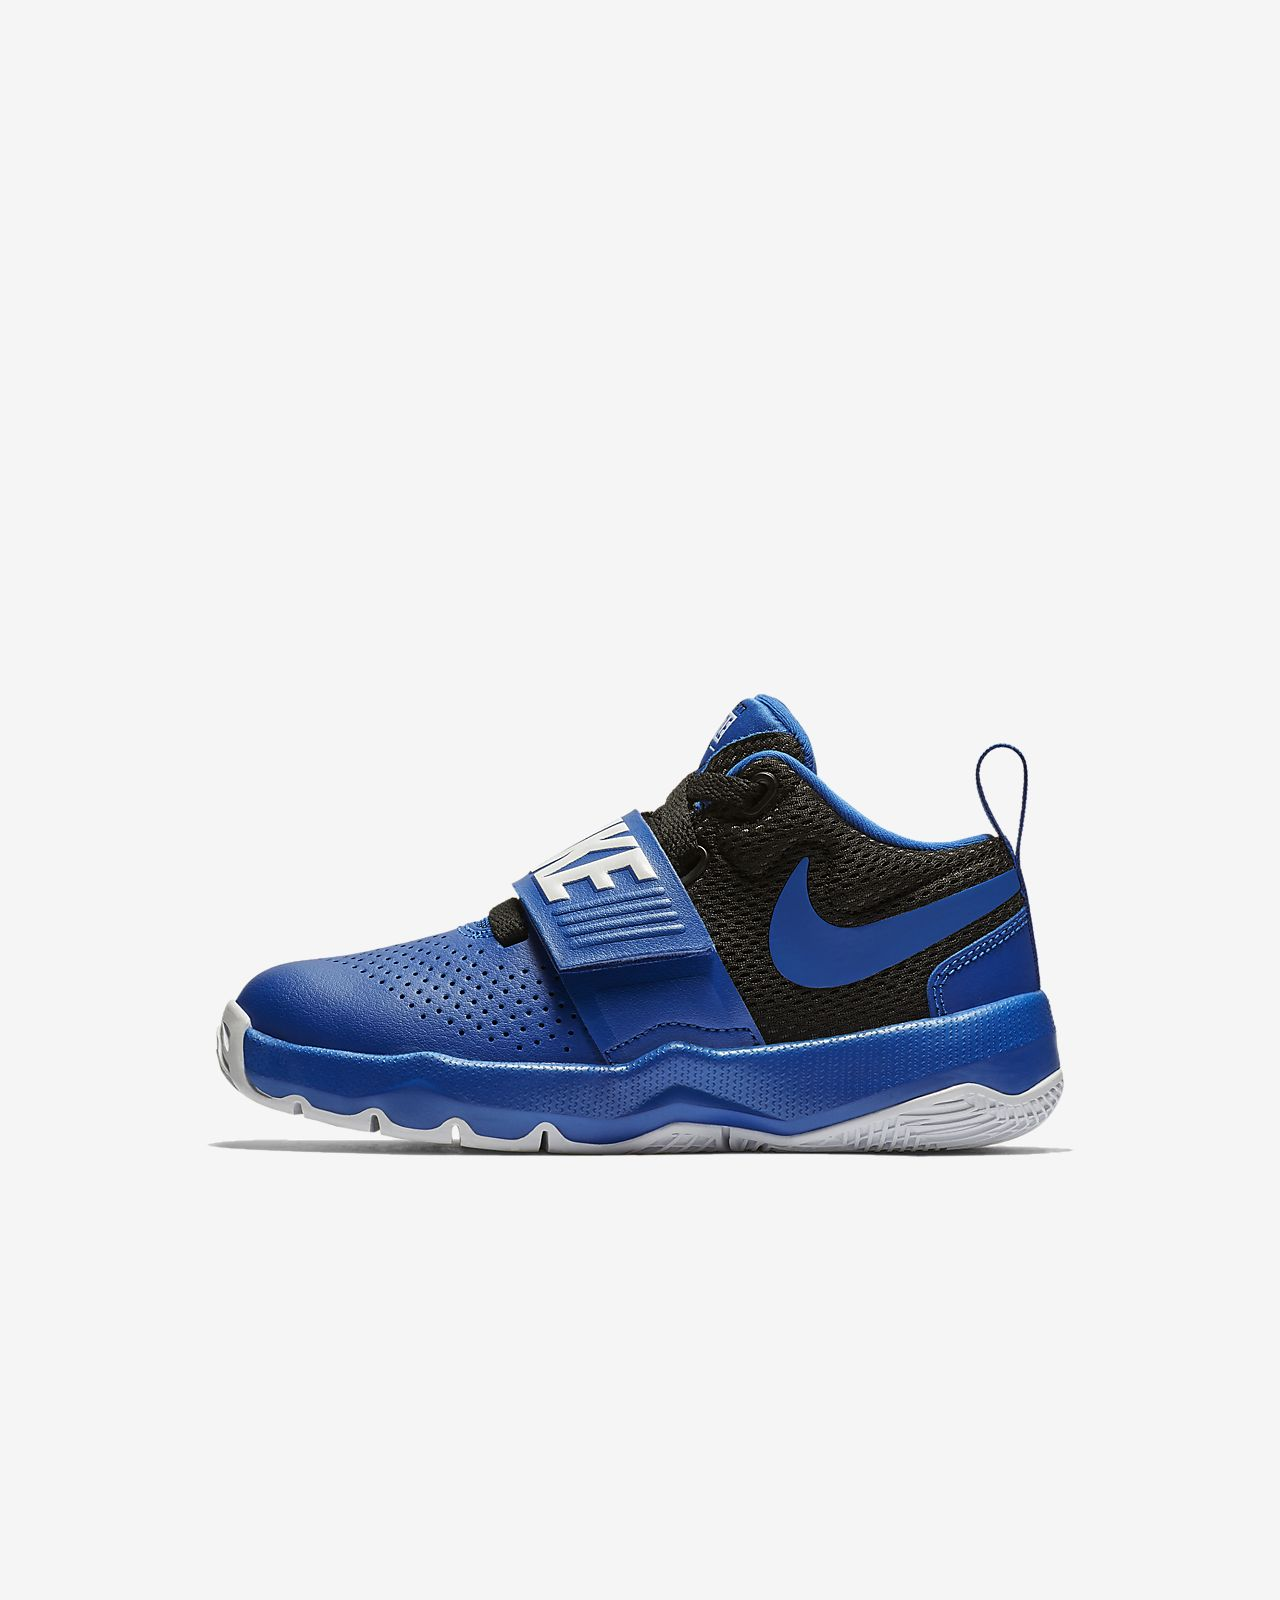 222c7921a9ee Nike Team Hustle D 8 Little Kids  Basketball Shoe. Nike.com